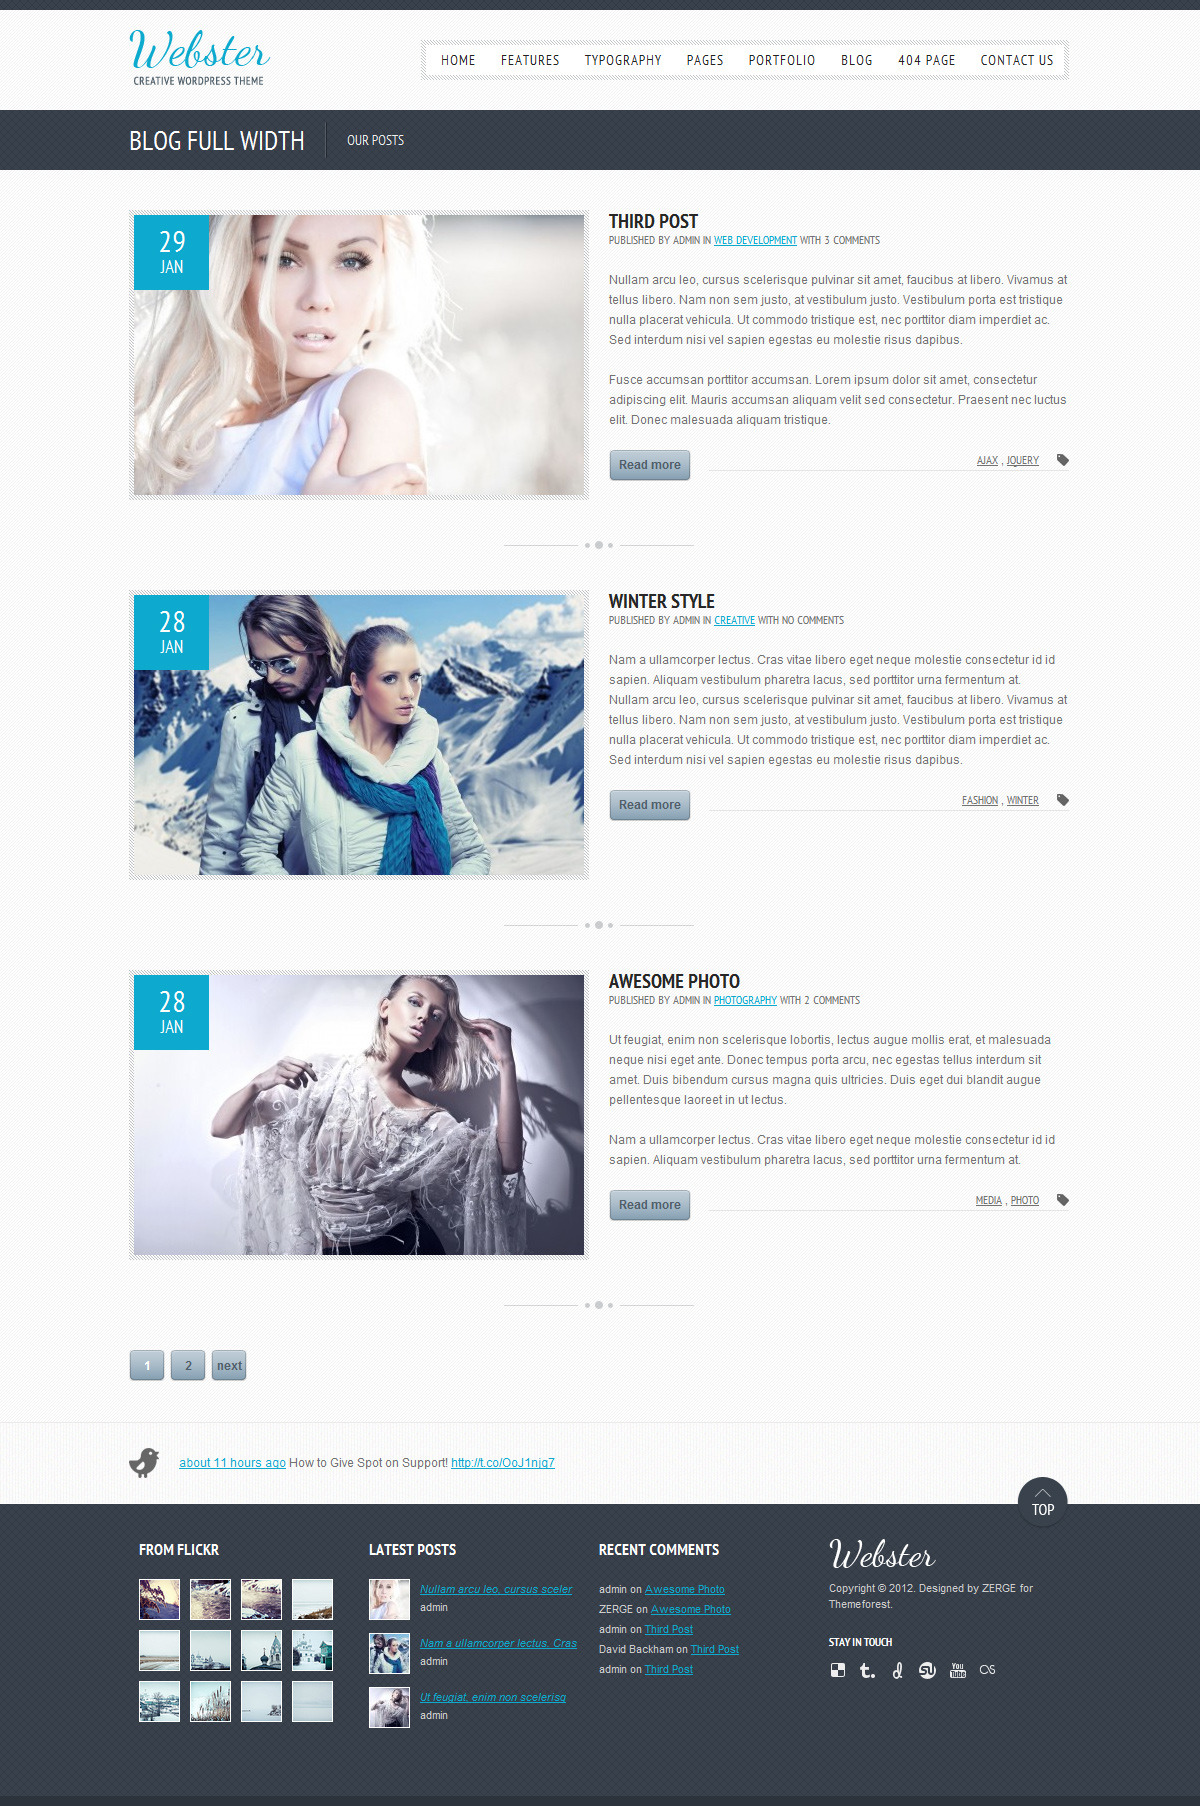 Webster - Creative WordPress Theme - Full Width Blog